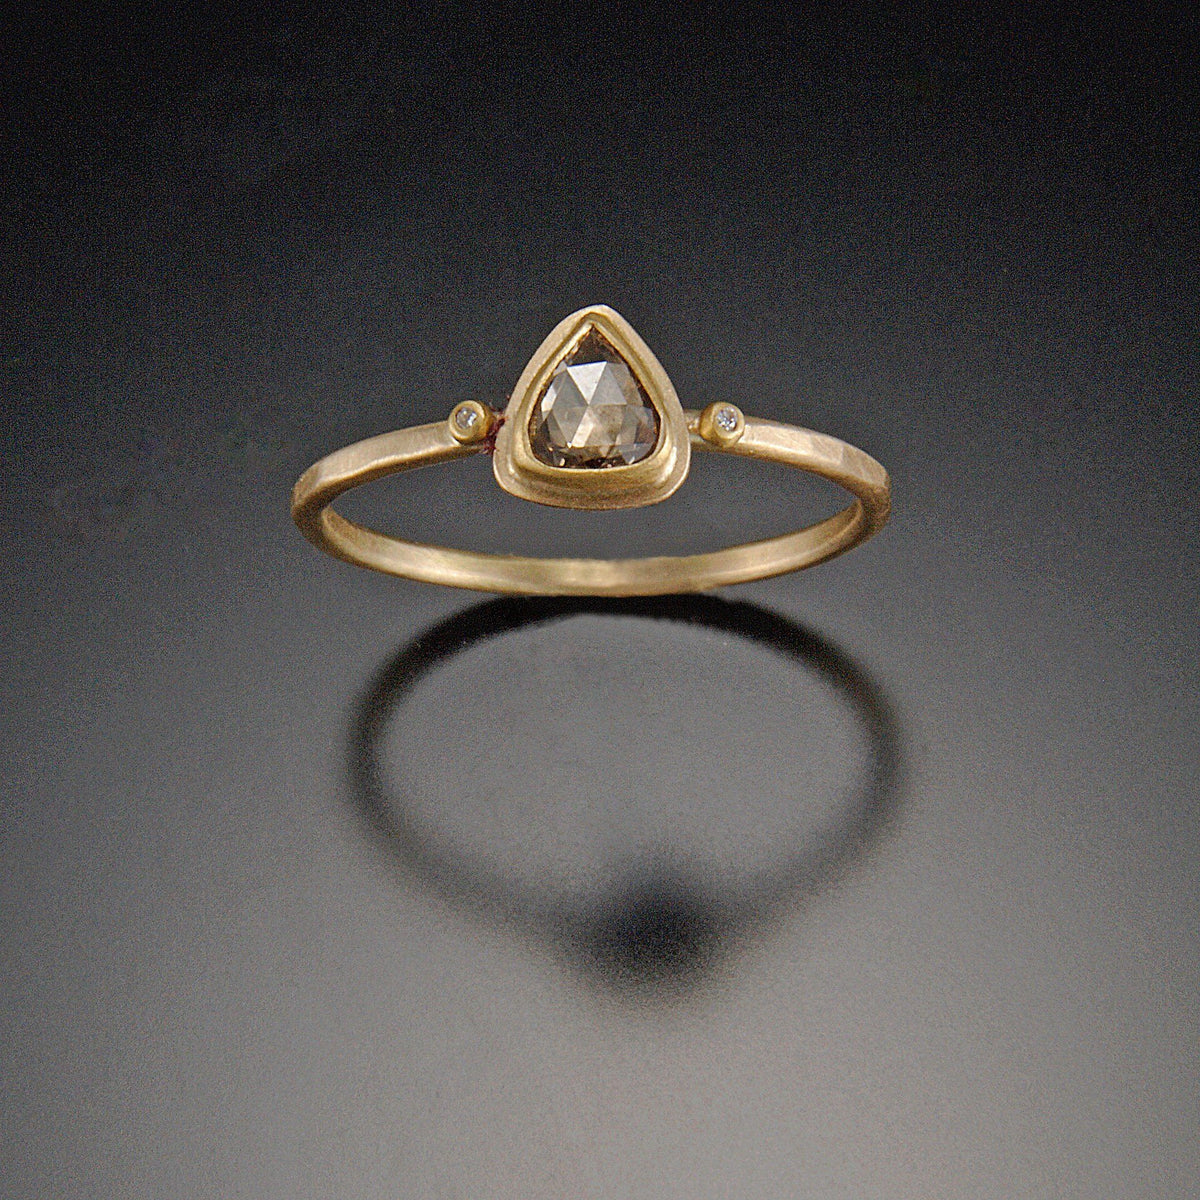 lola pear diamond ring jewelry shop rings insp august grey brooks drop carbon teardrop shape tear